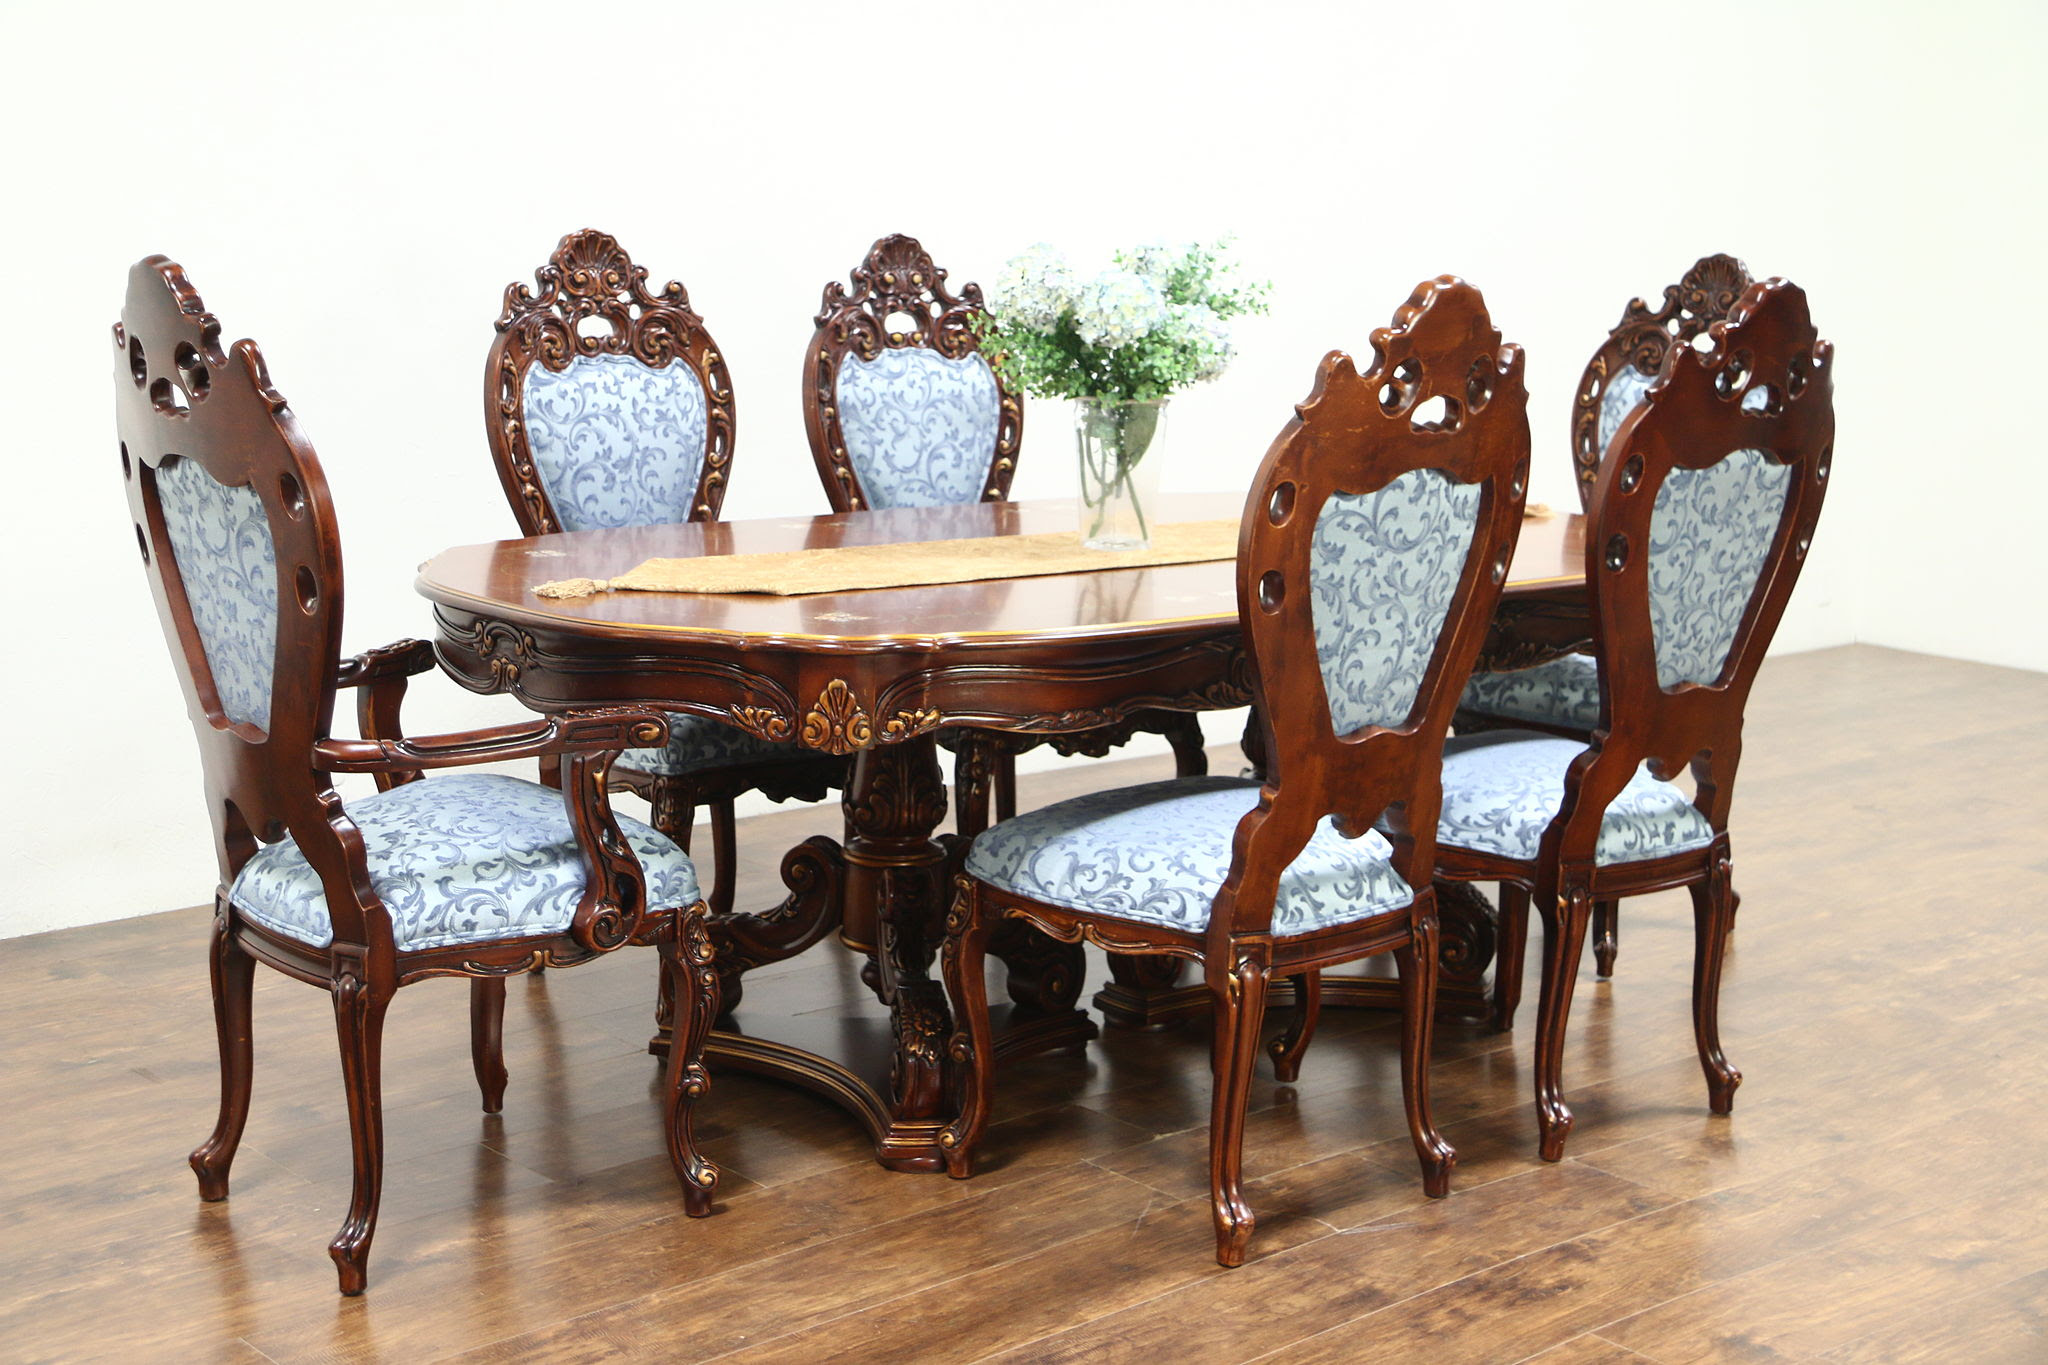 Sold Baroque Carved Cherry Vintage Dining Set Table 6 Chairs Signed Montalban Harp Gallery Antiques Furniture